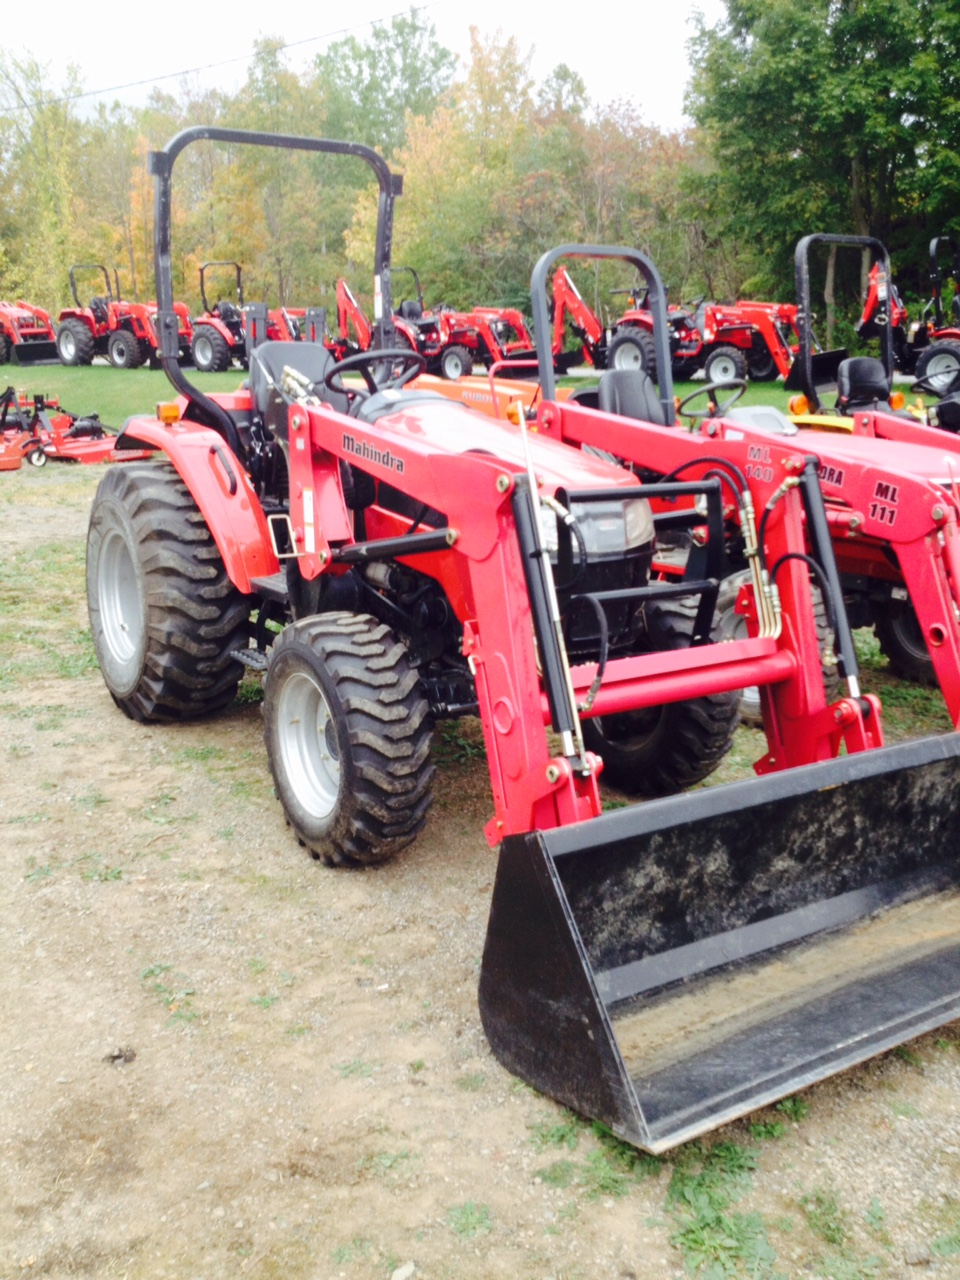 2012 Mahindra 4010 Tractor Loader for sale in Sharon Springs